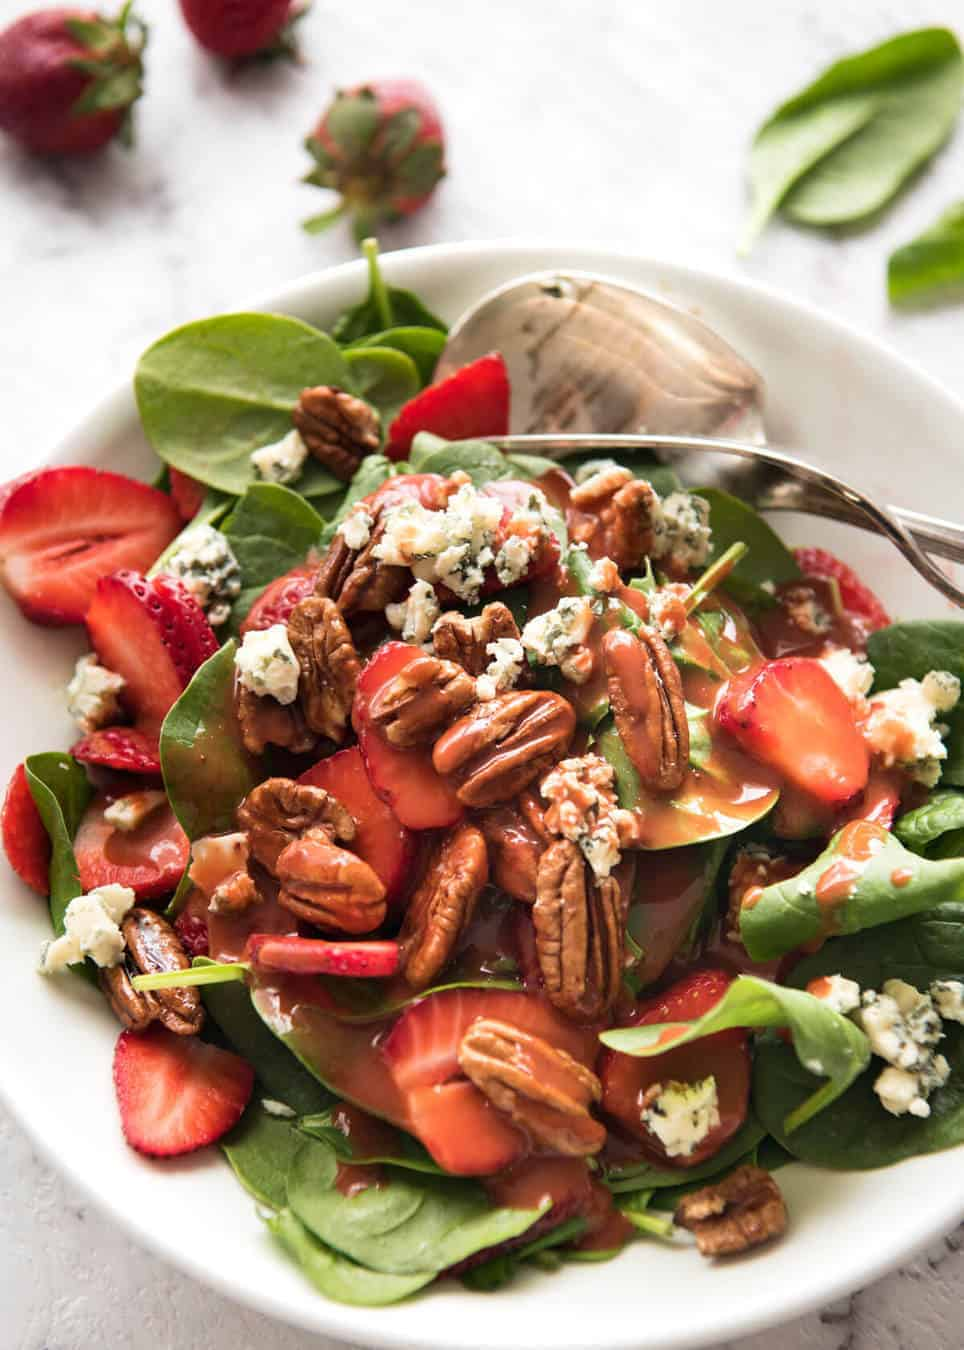 A stunning Chef recipe for a Strawberry Spinach Salad. Spinach, fresh strawberries, blue cheese and candied pecans with a Strawberry Balsamic Dressing. recipetineats.com